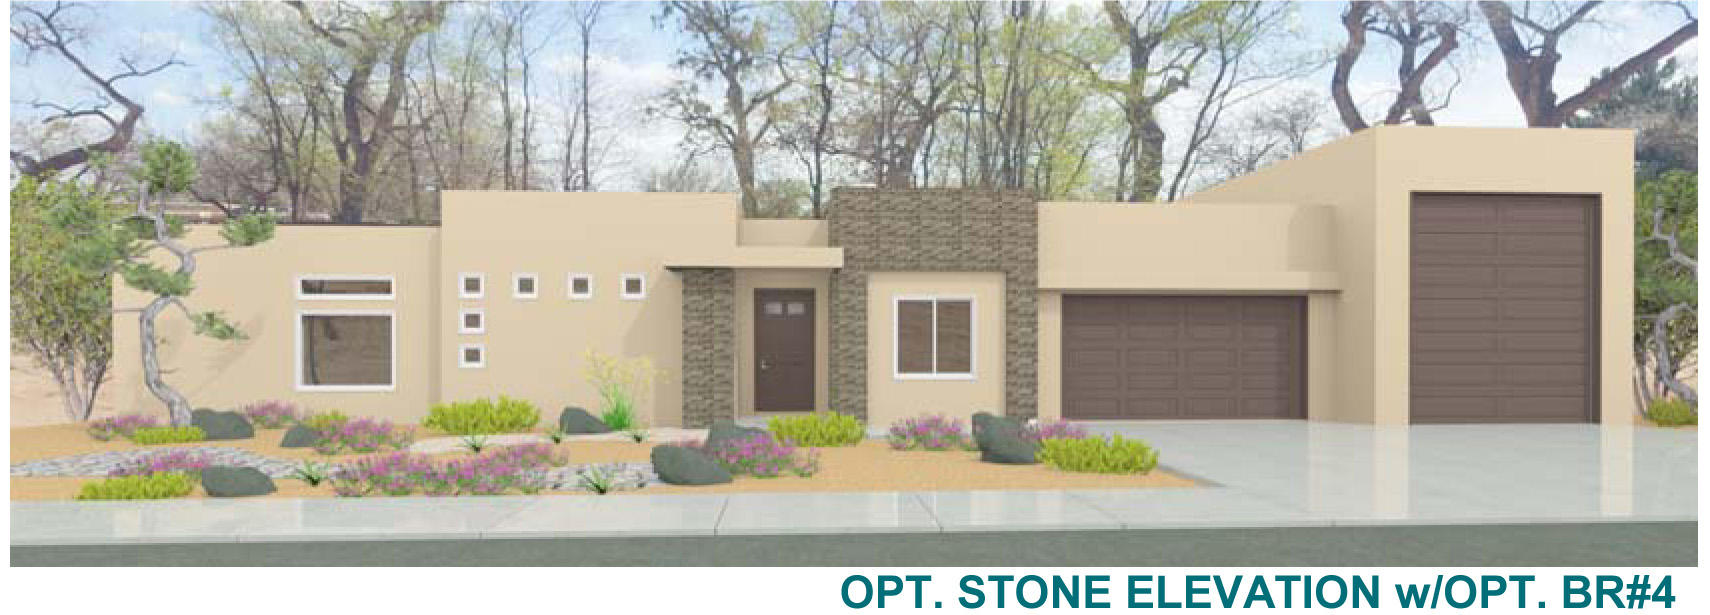 New gated community by Sivage Homes. Near El Pinto, Ballon Fiesta Park, Sandia Casino. Easy access to I-25. To be built new Sivage Home in the North Valley. This home includes a 15.5' x 45' attached RV garage. There are only 9 lots in the gated community. 5 are sold. 4 still available. Come pick your lot and floorplan and build it your way. Call Adrian for more info and build times.